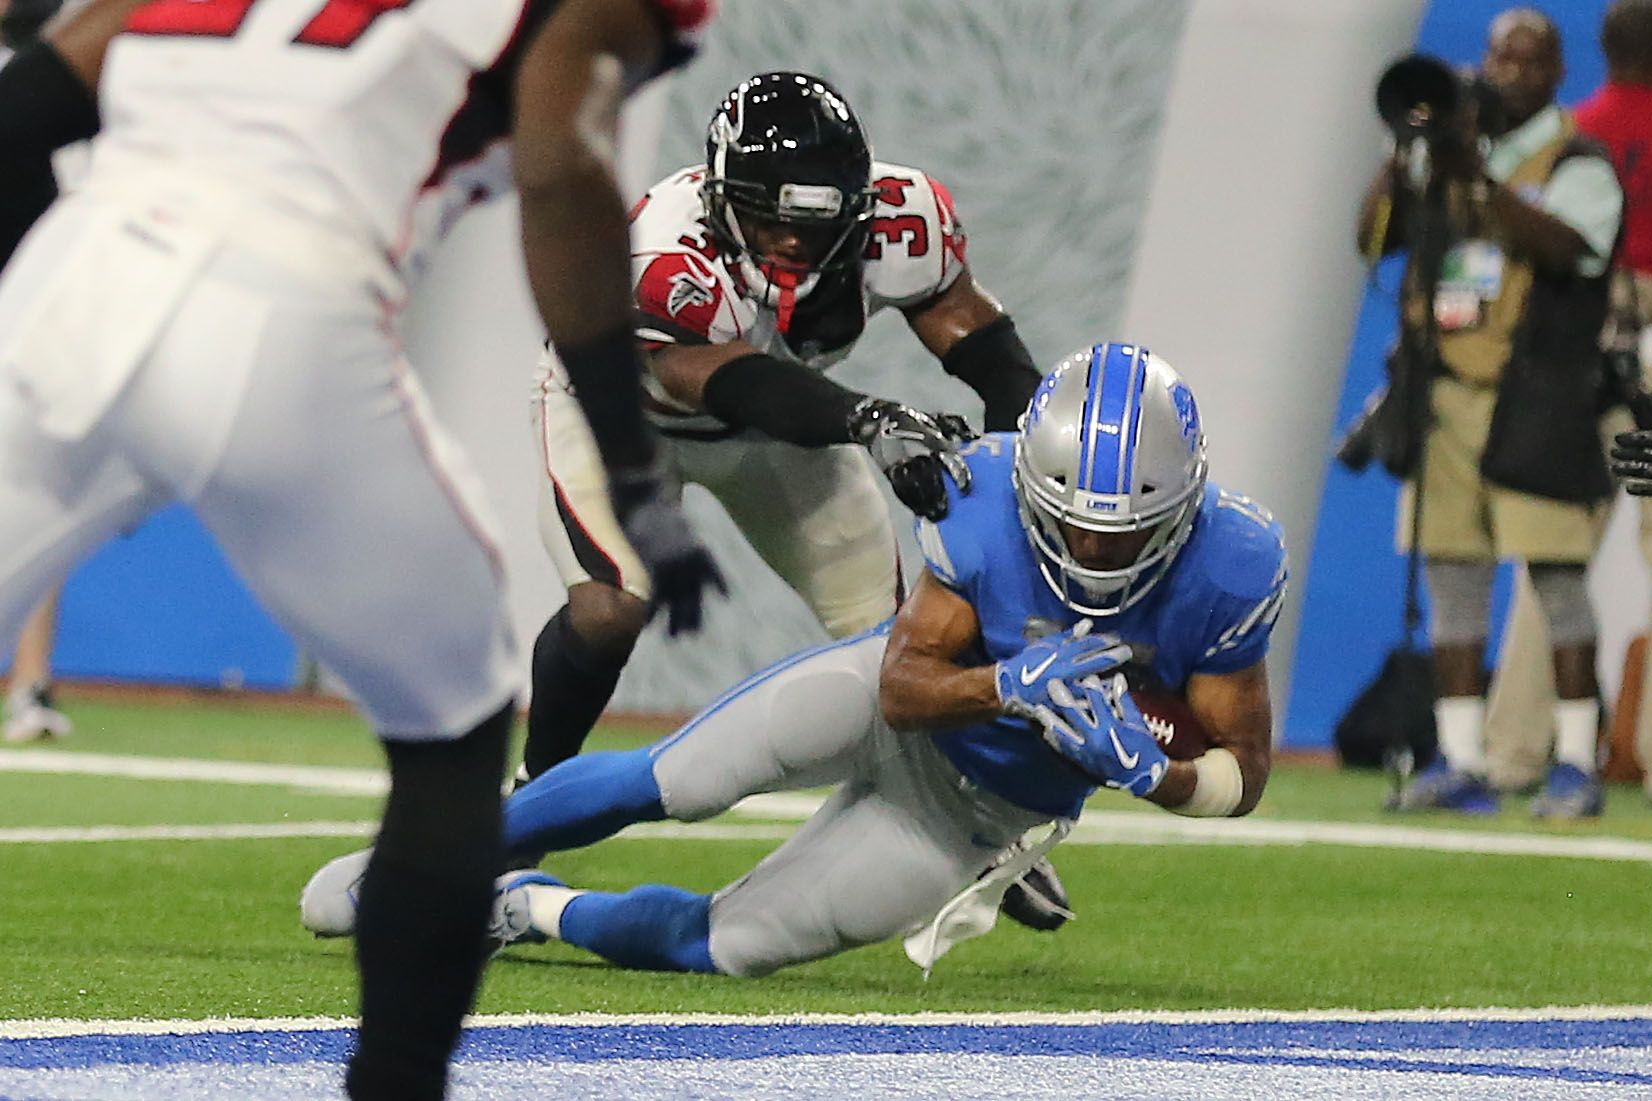 Golden Tate S Game Winning Td Was Overturned Exactly 5 Years After Catching The Fail Mary Sbnation Comclockmenumore Arrowhorizont Nfl Lions Win Golden Tate